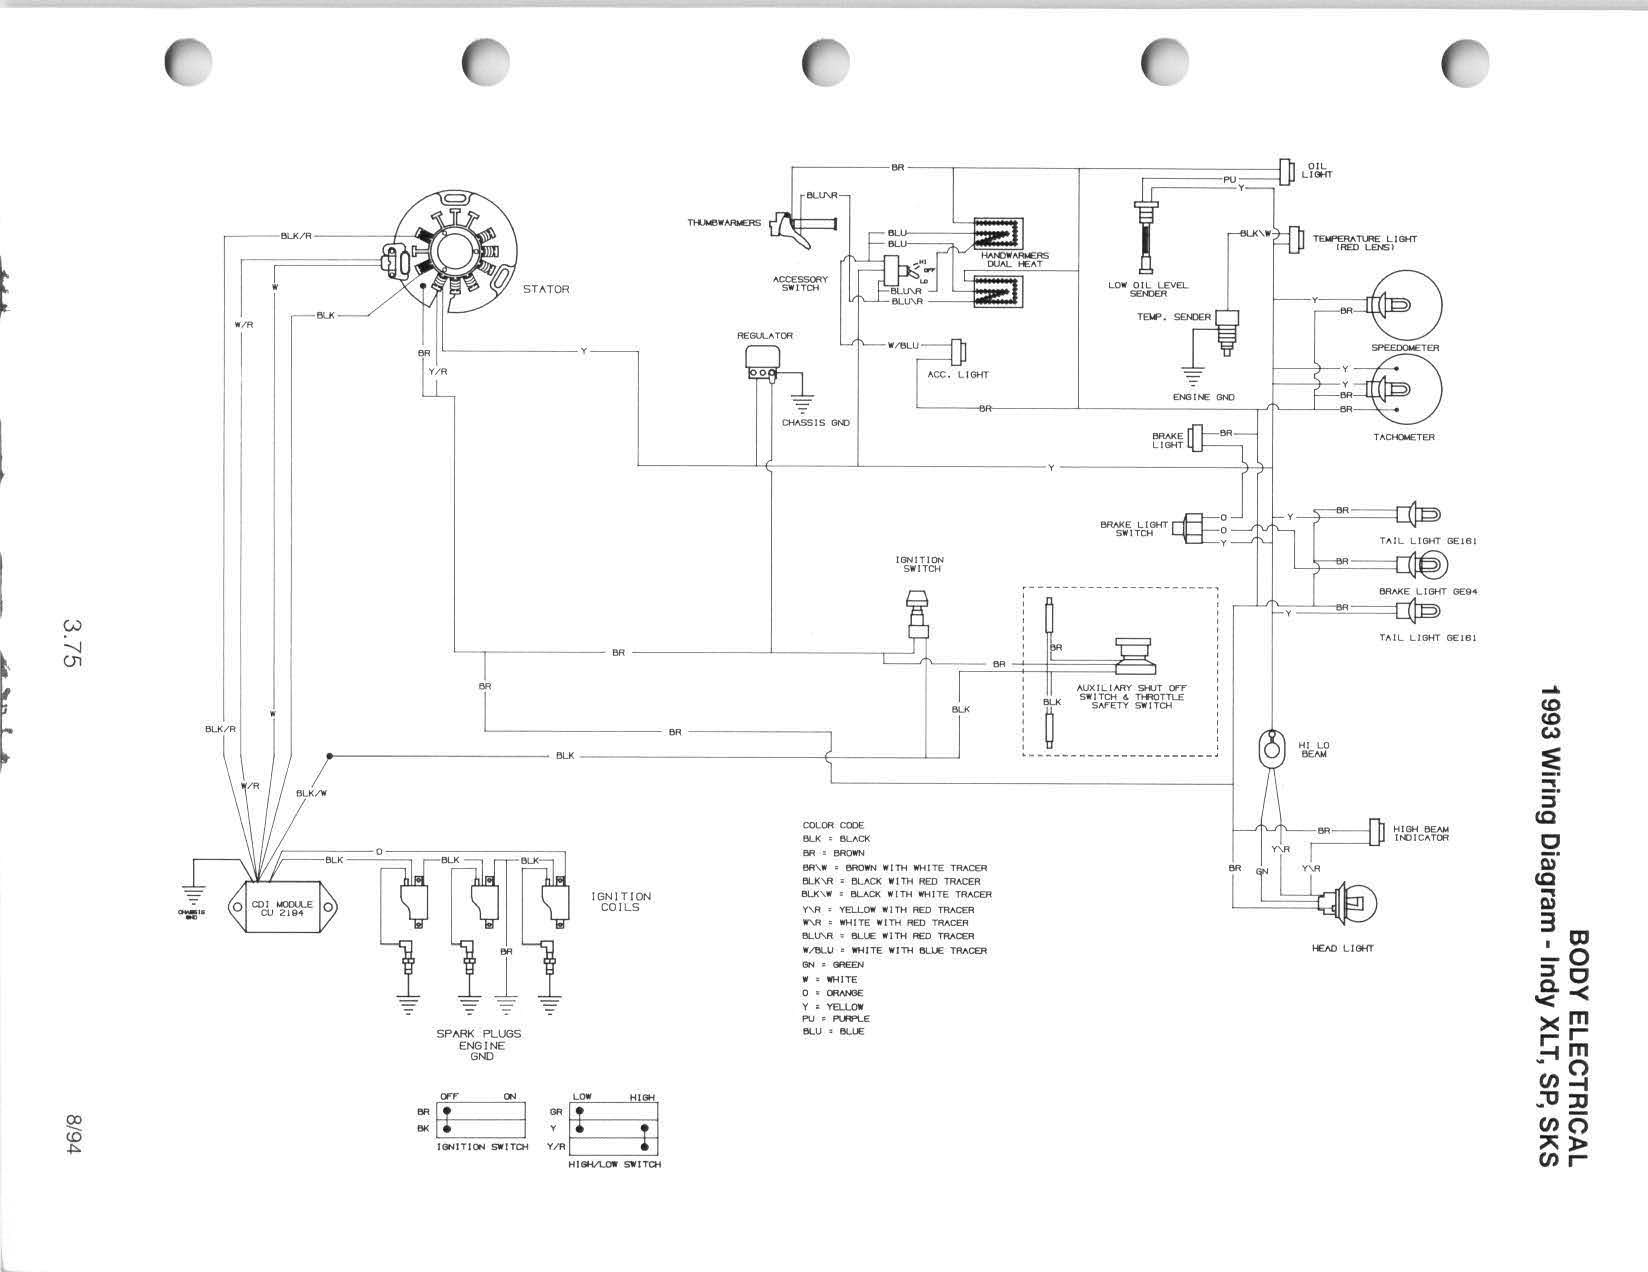 snowmobile engine diagram 92 indy quits when warm my wiring diagram rh detoxicrecenze com 1995 polaris xlt wiring diagram 1996 polaris xlt wiring diagram